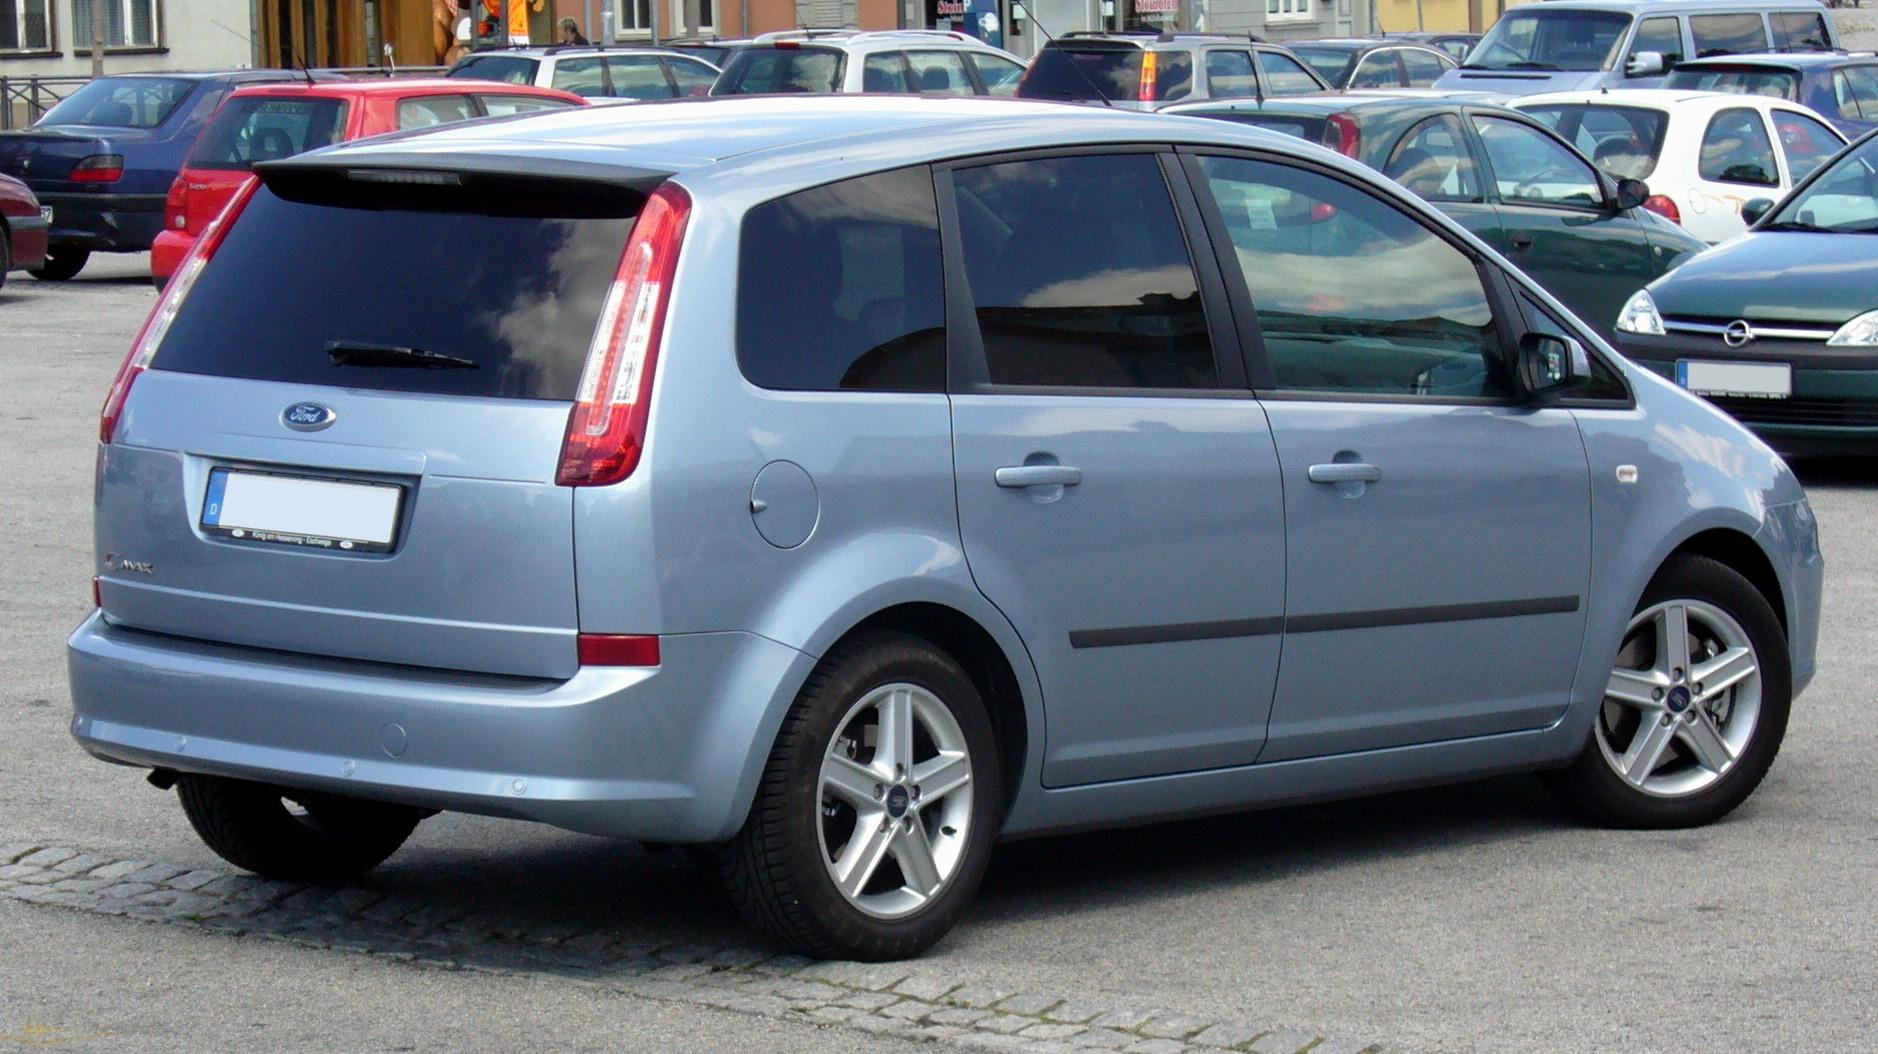 ford c max history photos on better parts ltd. Black Bedroom Furniture Sets. Home Design Ideas